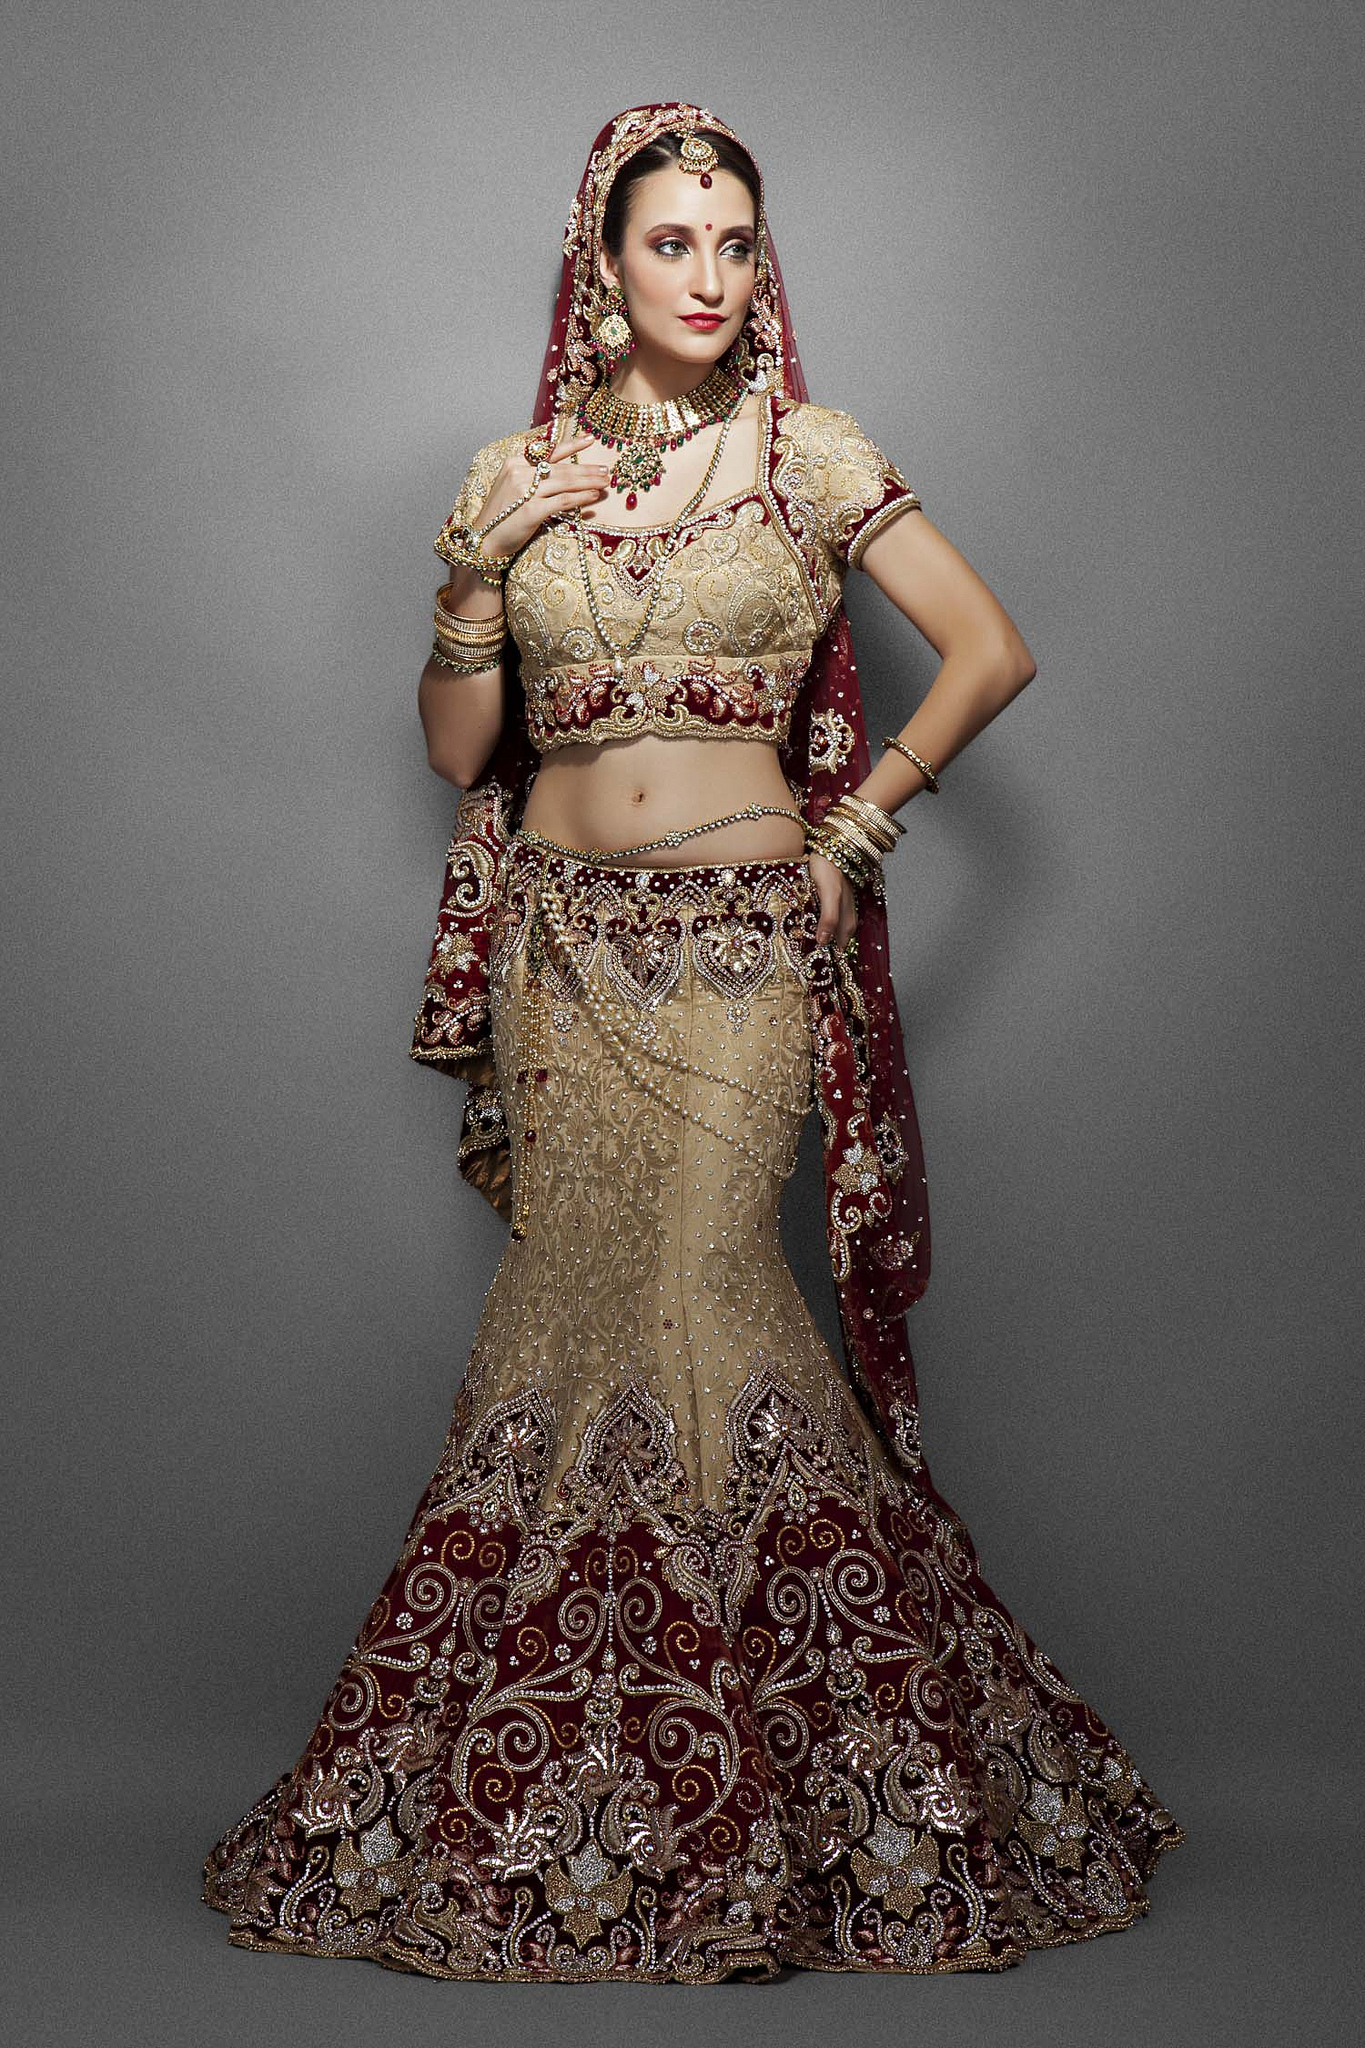 Gold brocade bridal Lehenga with traditional embroidery